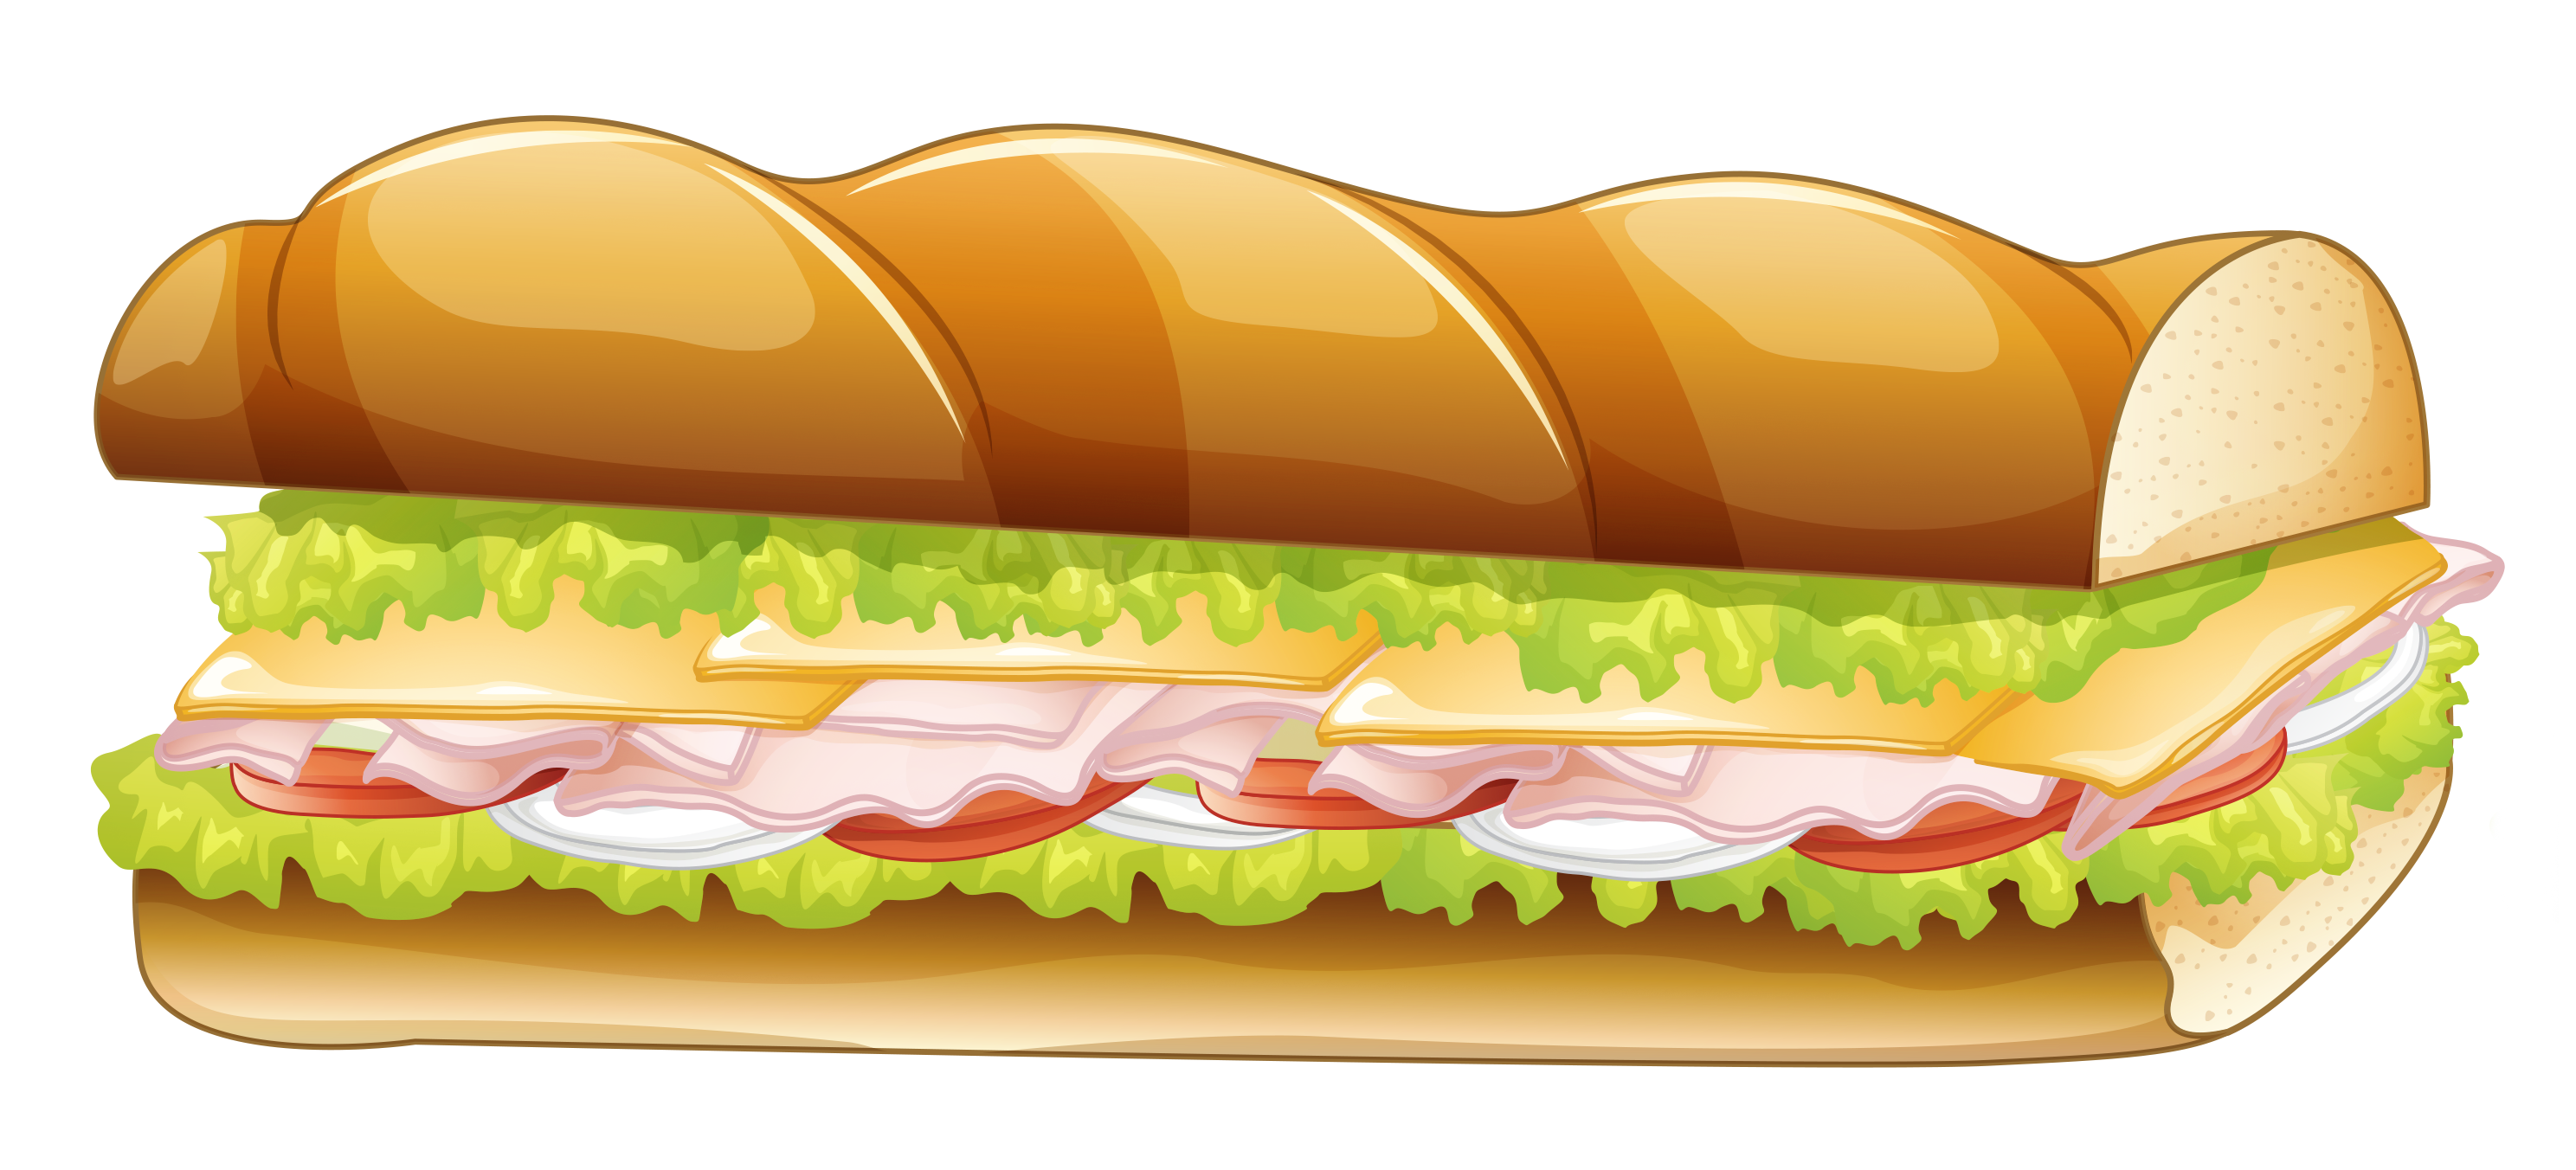 Pizza clipart junk food. Hamburger submarine sandwich panini